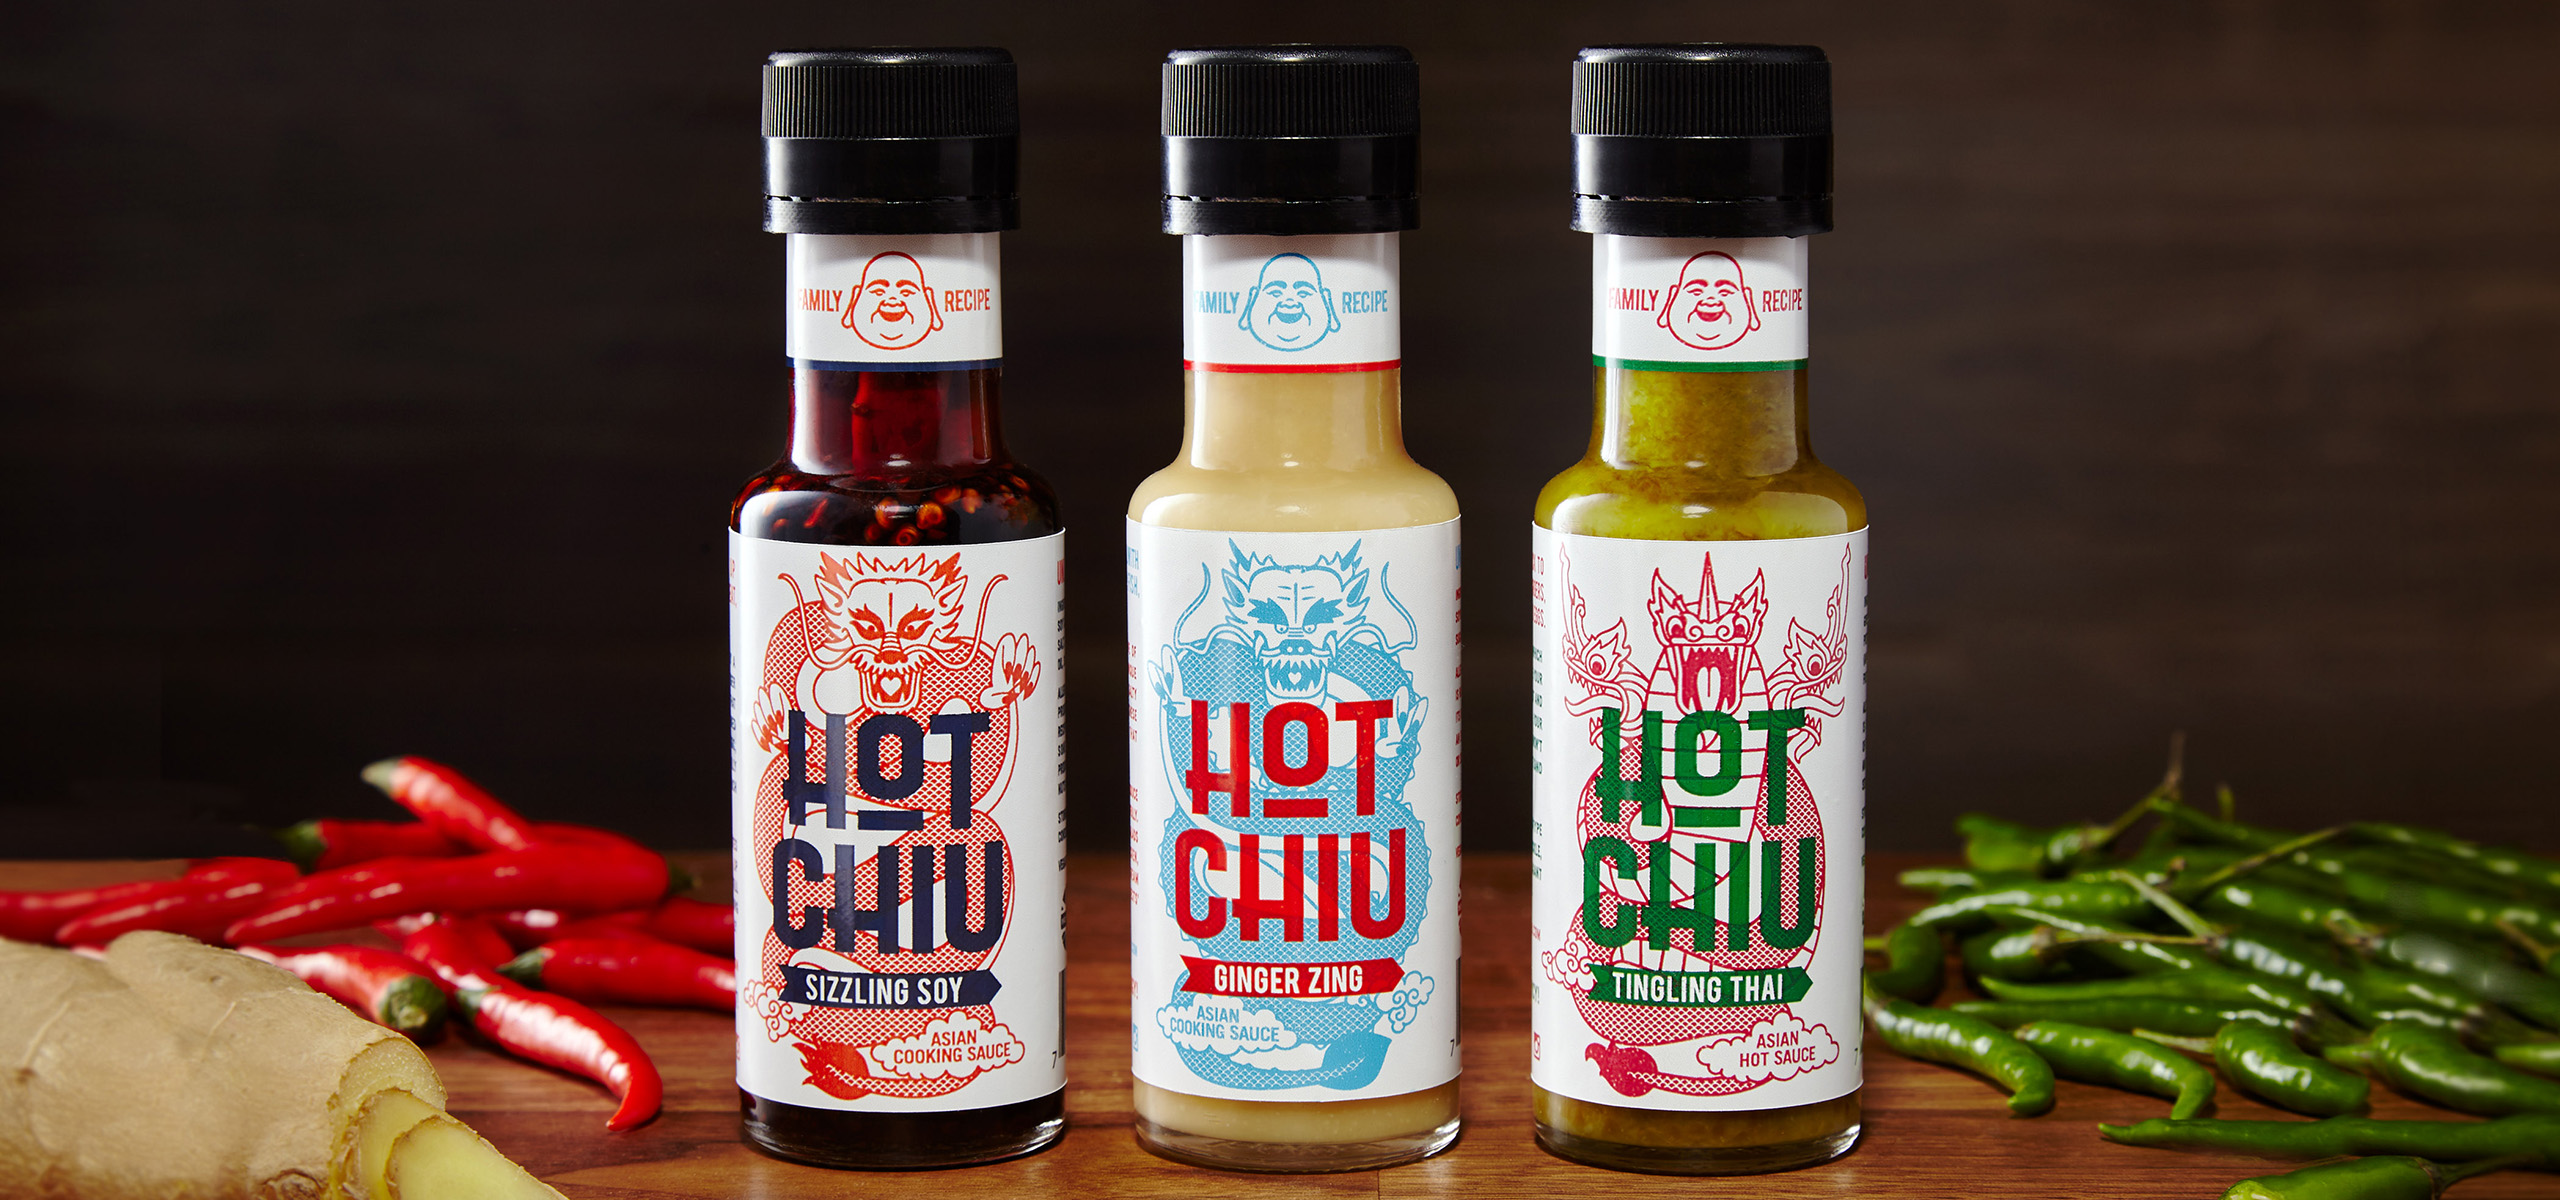 3 bottles packaging design for food startup Hot Chiu, designed by White Bear Studio